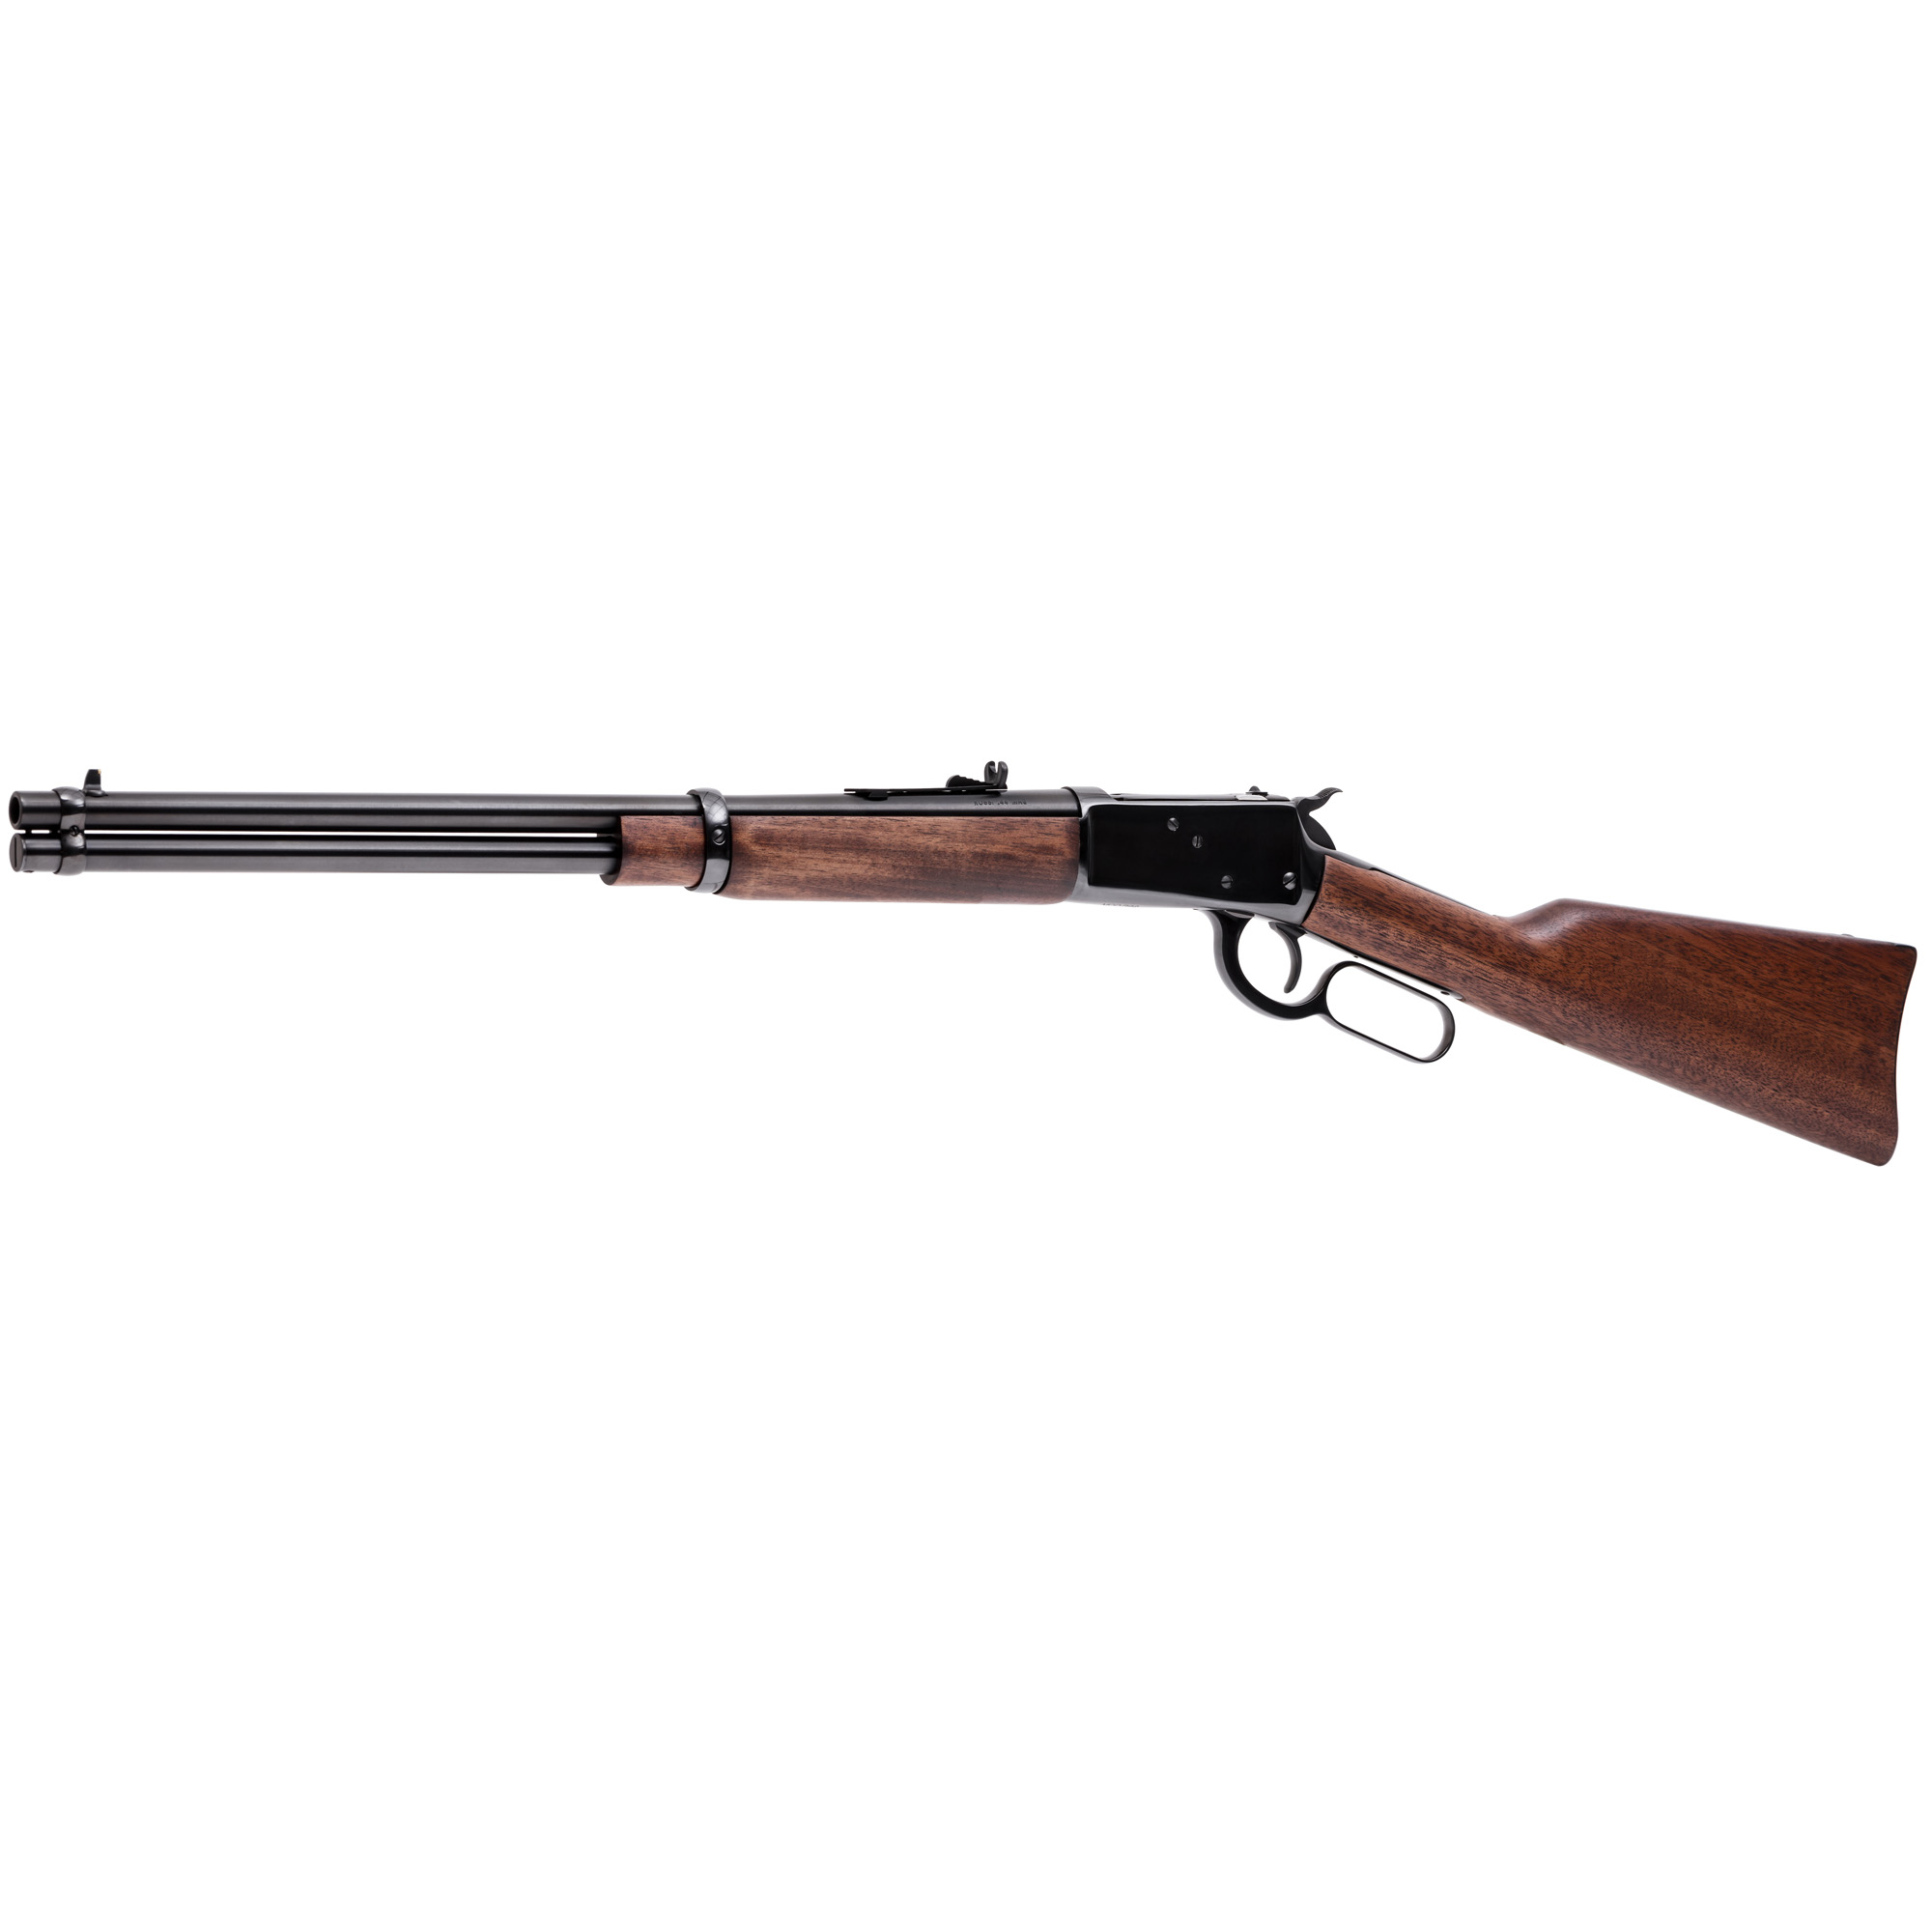 """The Rossi M92 Round Barrel delivers shorter"""" lighter versions of their big brothers with 16"""" or 20"""" carbine models. The Round Barrel comes in two finish options - Blue or Stainless. Round Barrel models feature crescent butt plates and an extended front sight."""